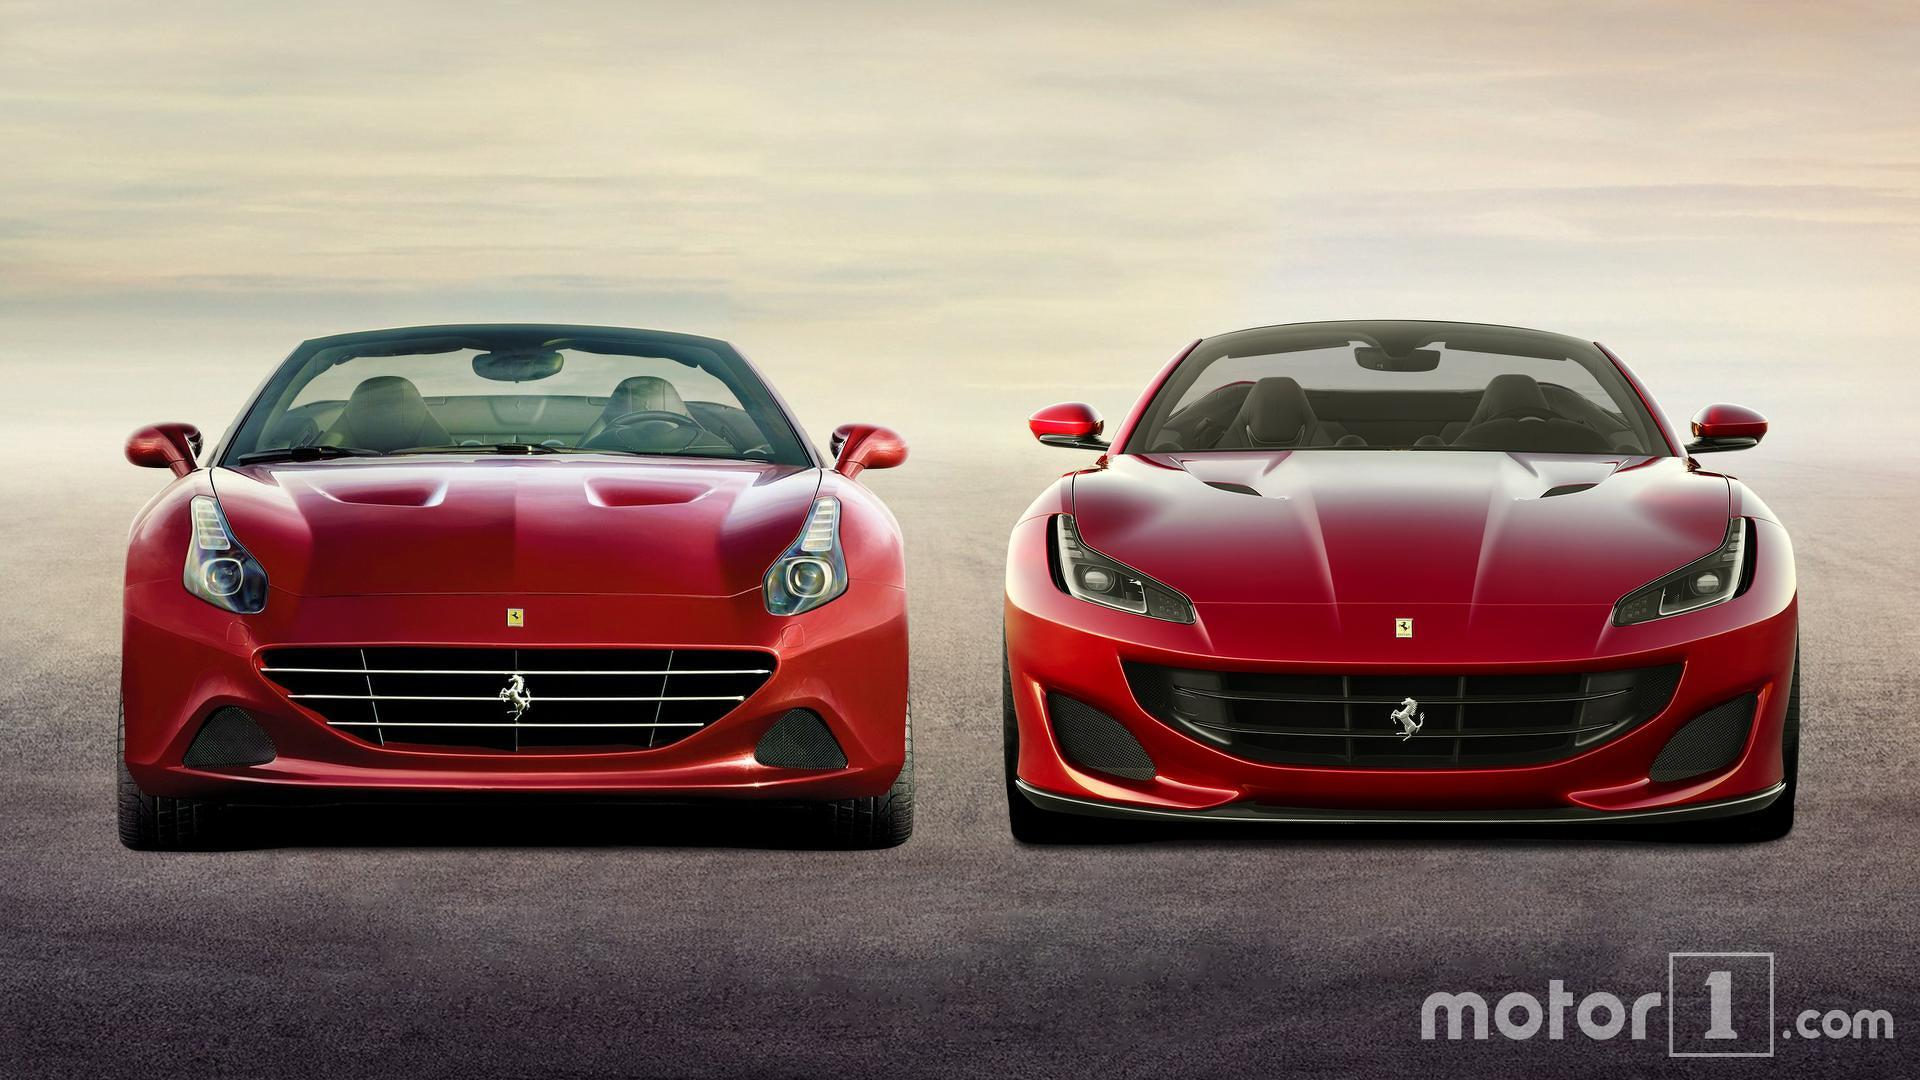 ferrari f12 spider with Ferrari Portofino California See Changes on Jeep Logo Wallpaper Iphone 5 together with Galerie moreover Ferrari 488 likewise 2002 Bmw 330ci Custom 456ea8150591d943 in addition Koenigsegg Agera Concept D2467c03033aab45.